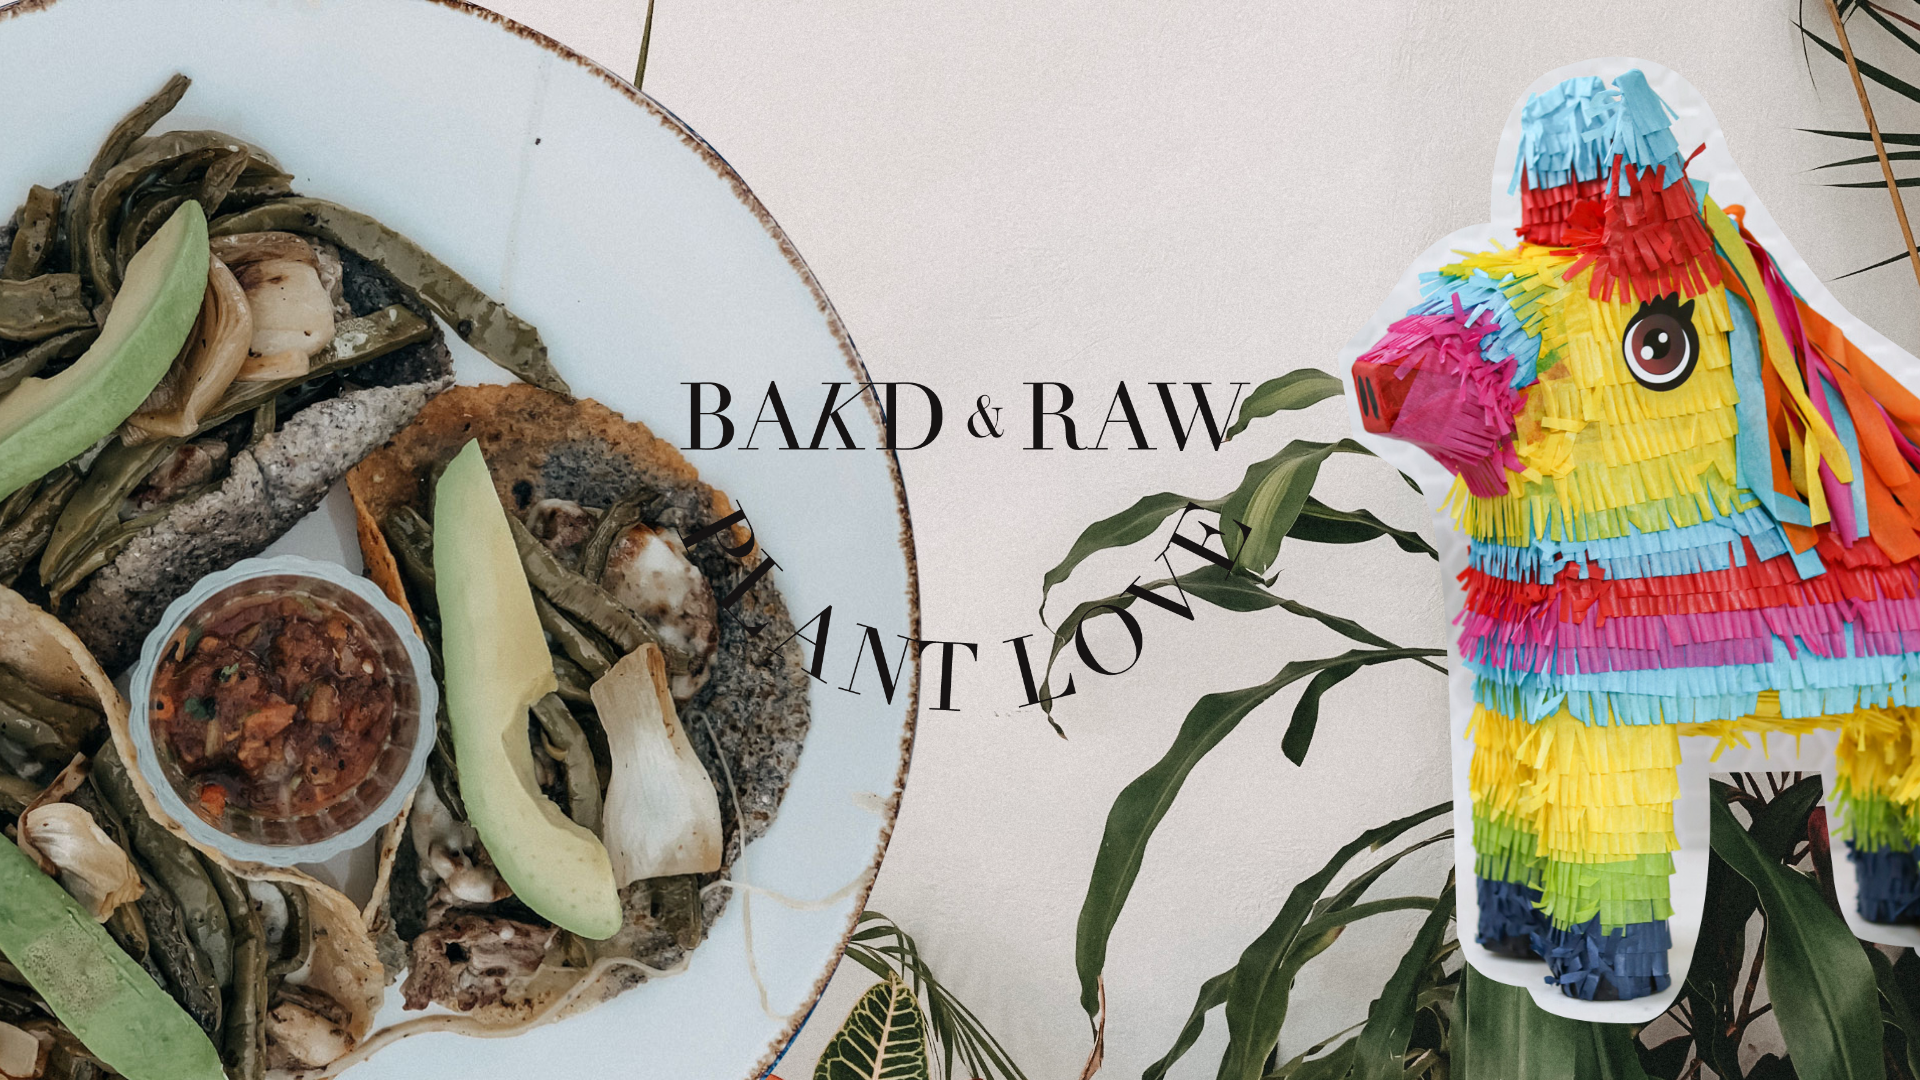 Karolin Baitinger; Birthday Bakd&Raw Plant Love